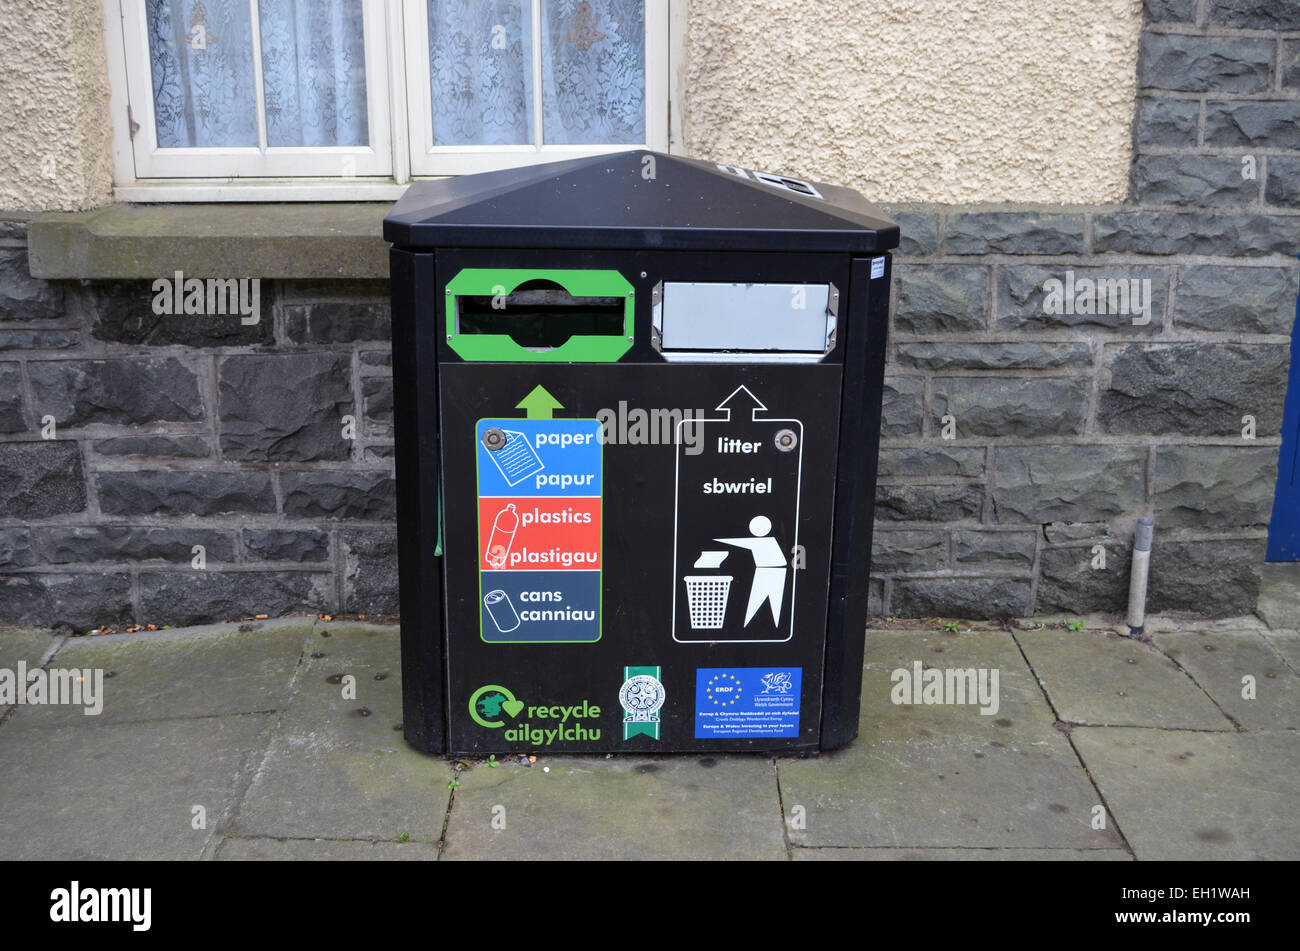 Recycling & rubbish bin, Wales - Stock Image